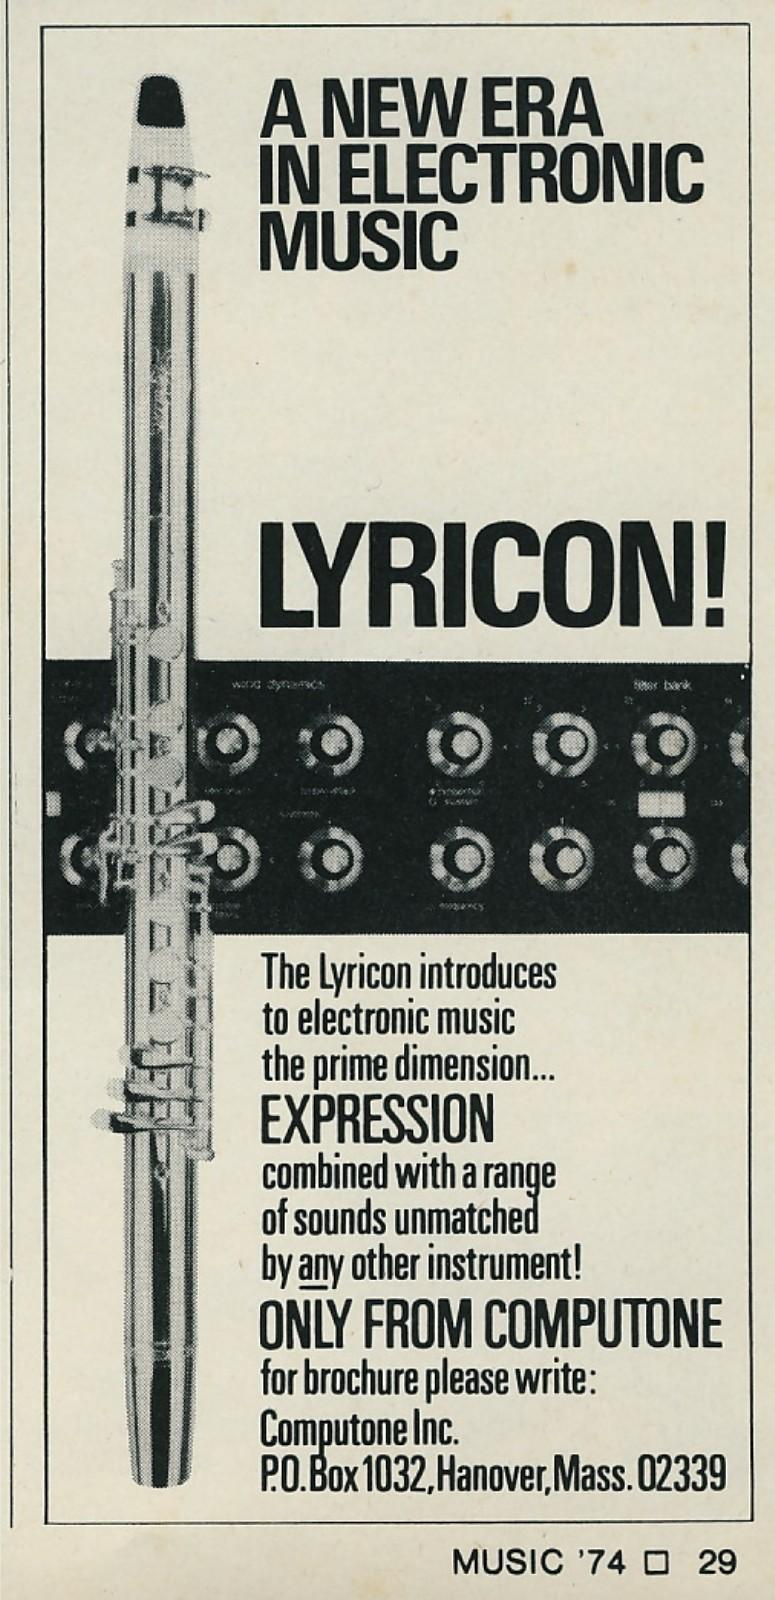 Lyricon I, wind controller, wind synth, wind synthesizer, vintage ad, 1974, Computone